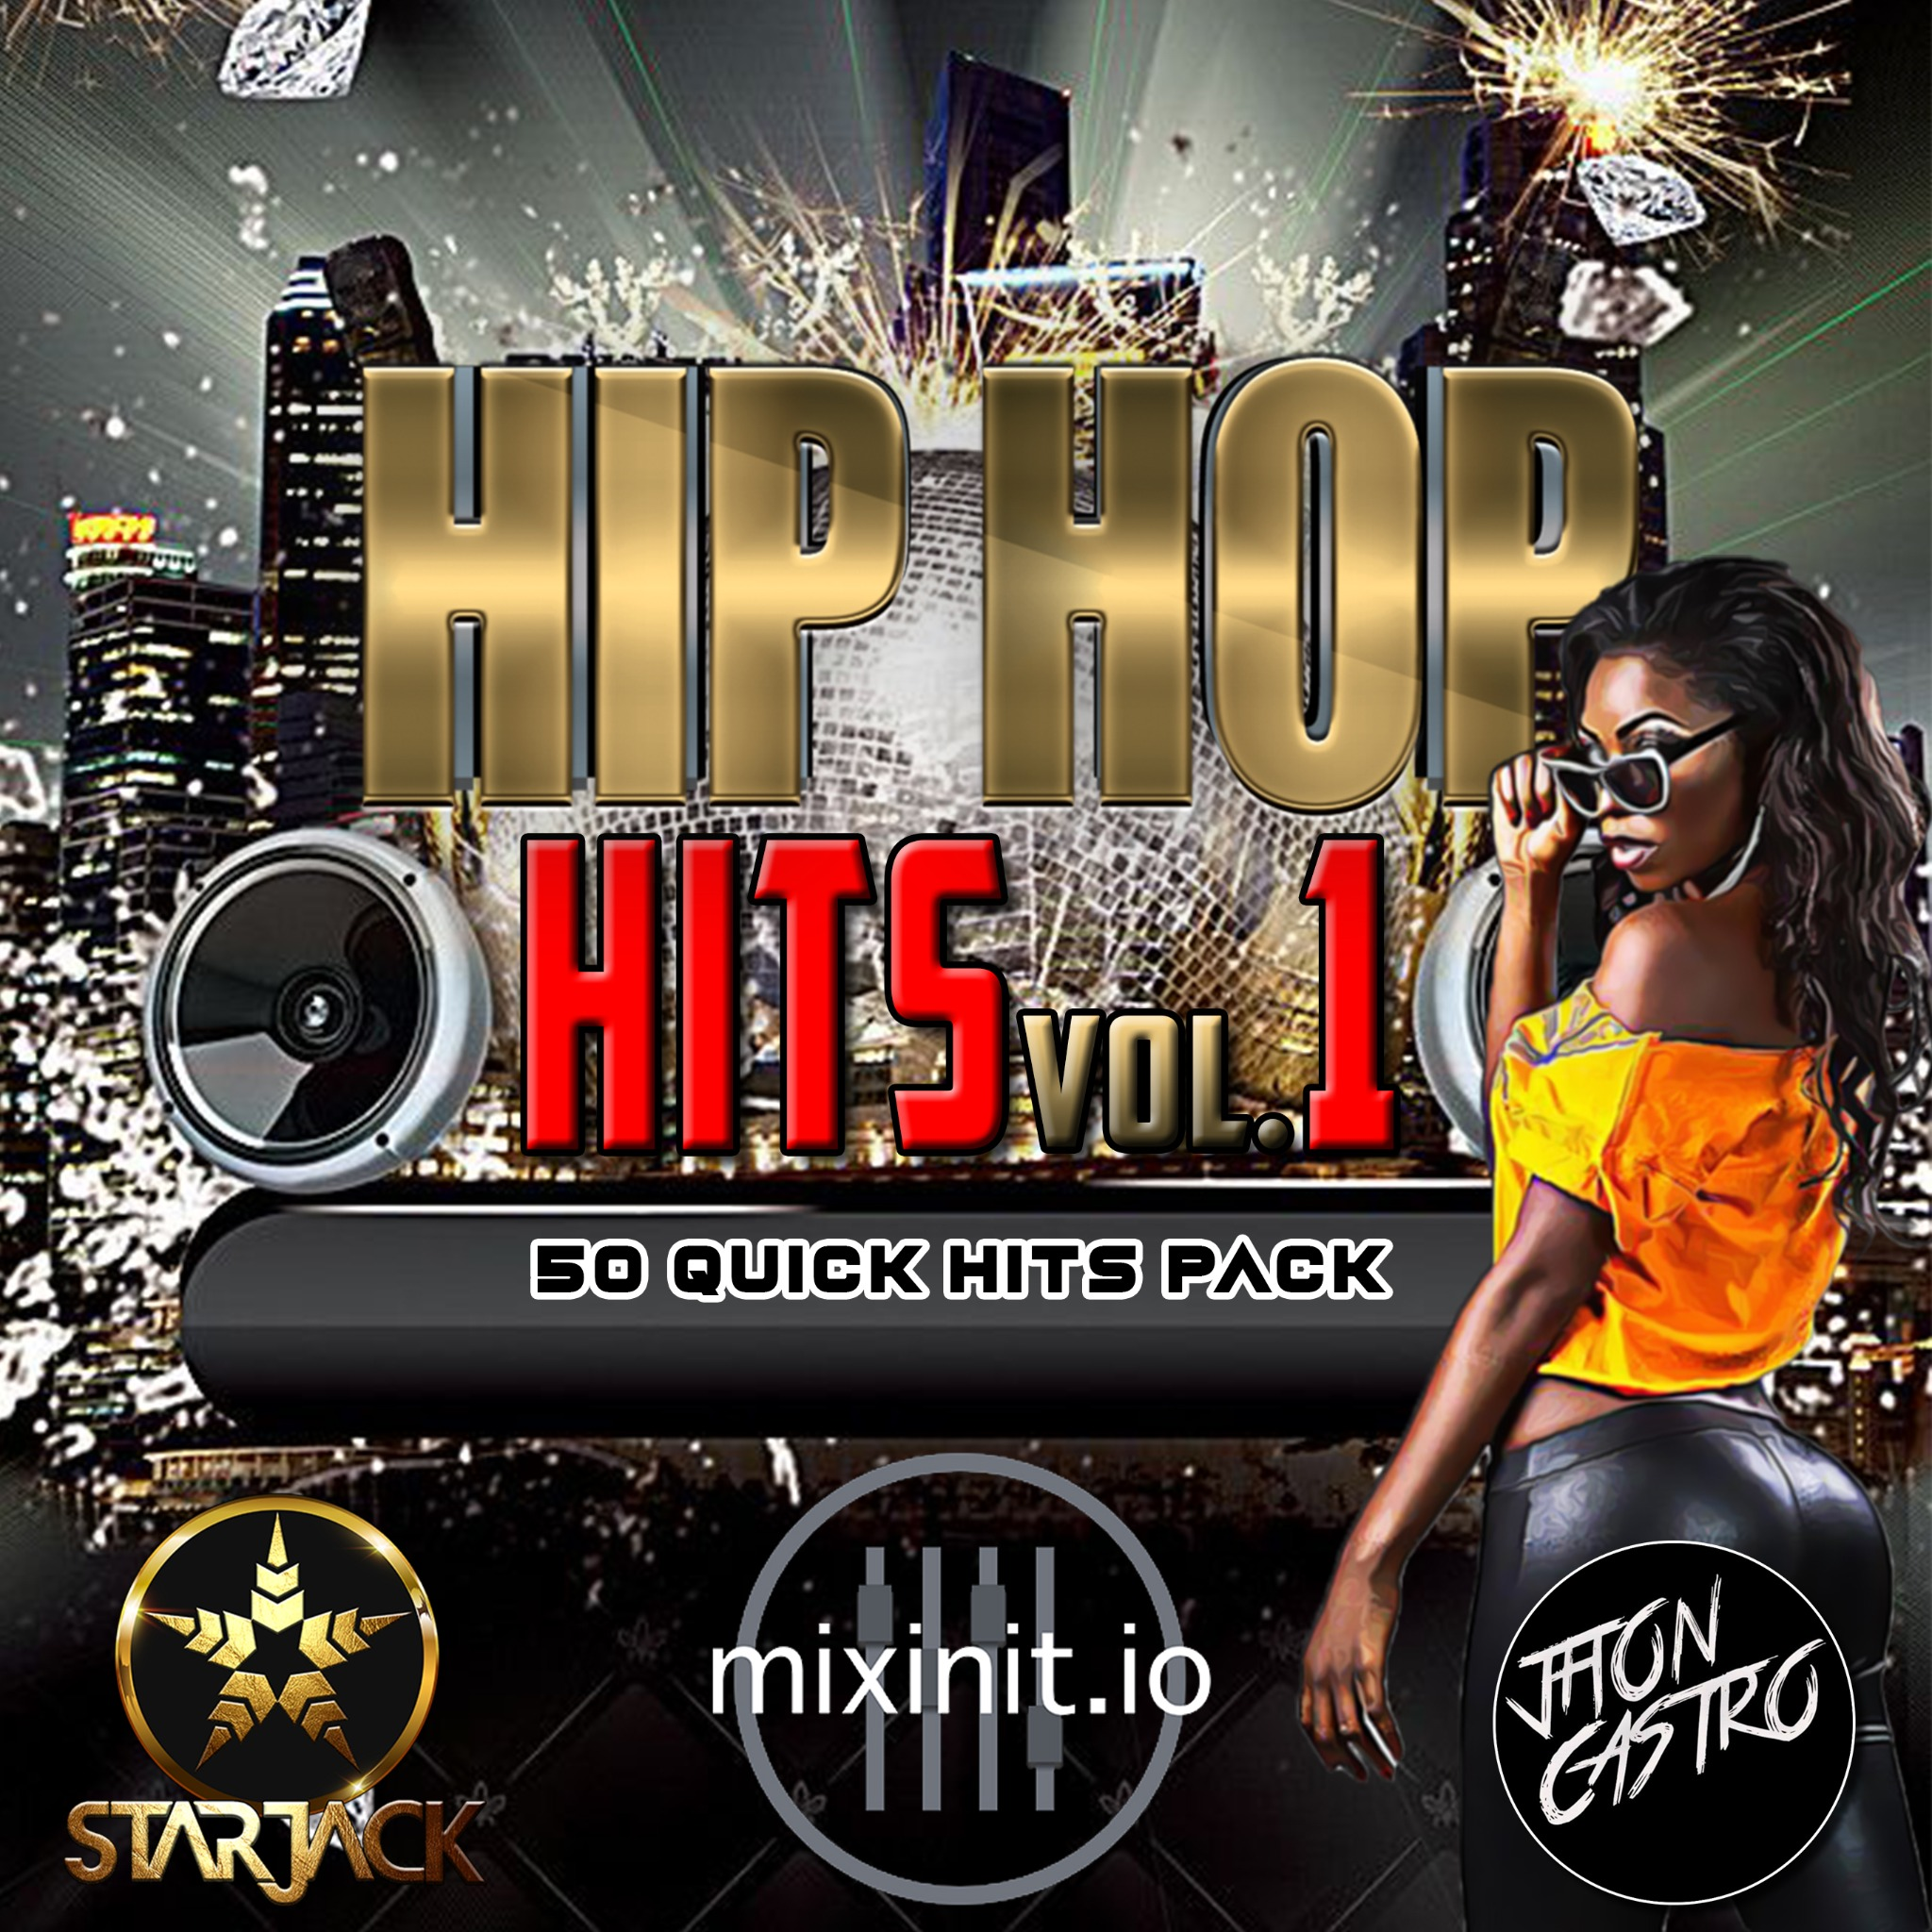 Starjack & Jhon Castro - Hip Hop Hits Vol. 1 (50 Quick Hits)